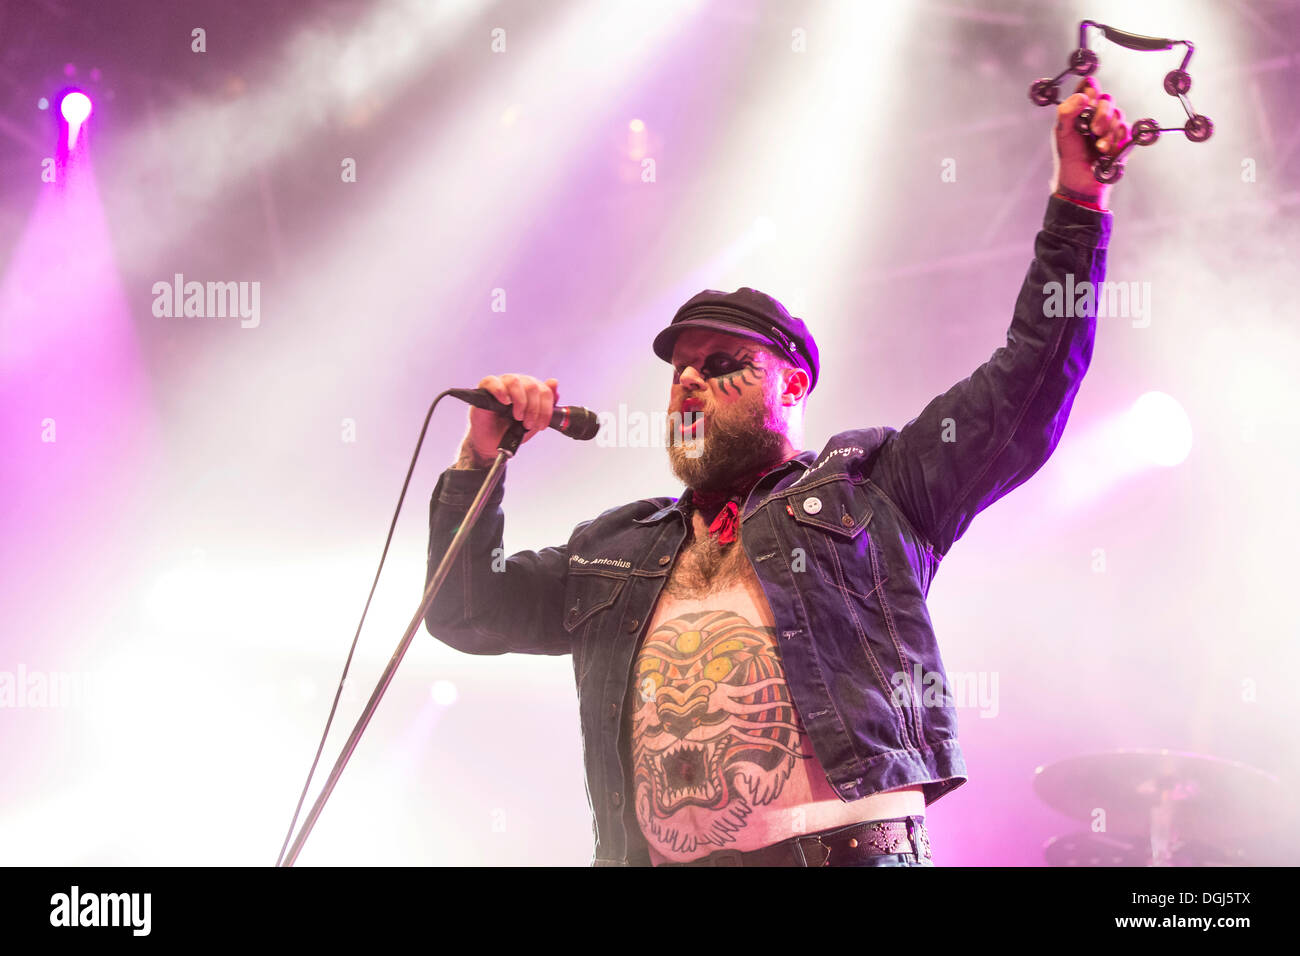 Singer and frontman Tony Sylvester from the Norwegian heavy metal, rock and punk band Turbonegro performing live Stock Photo